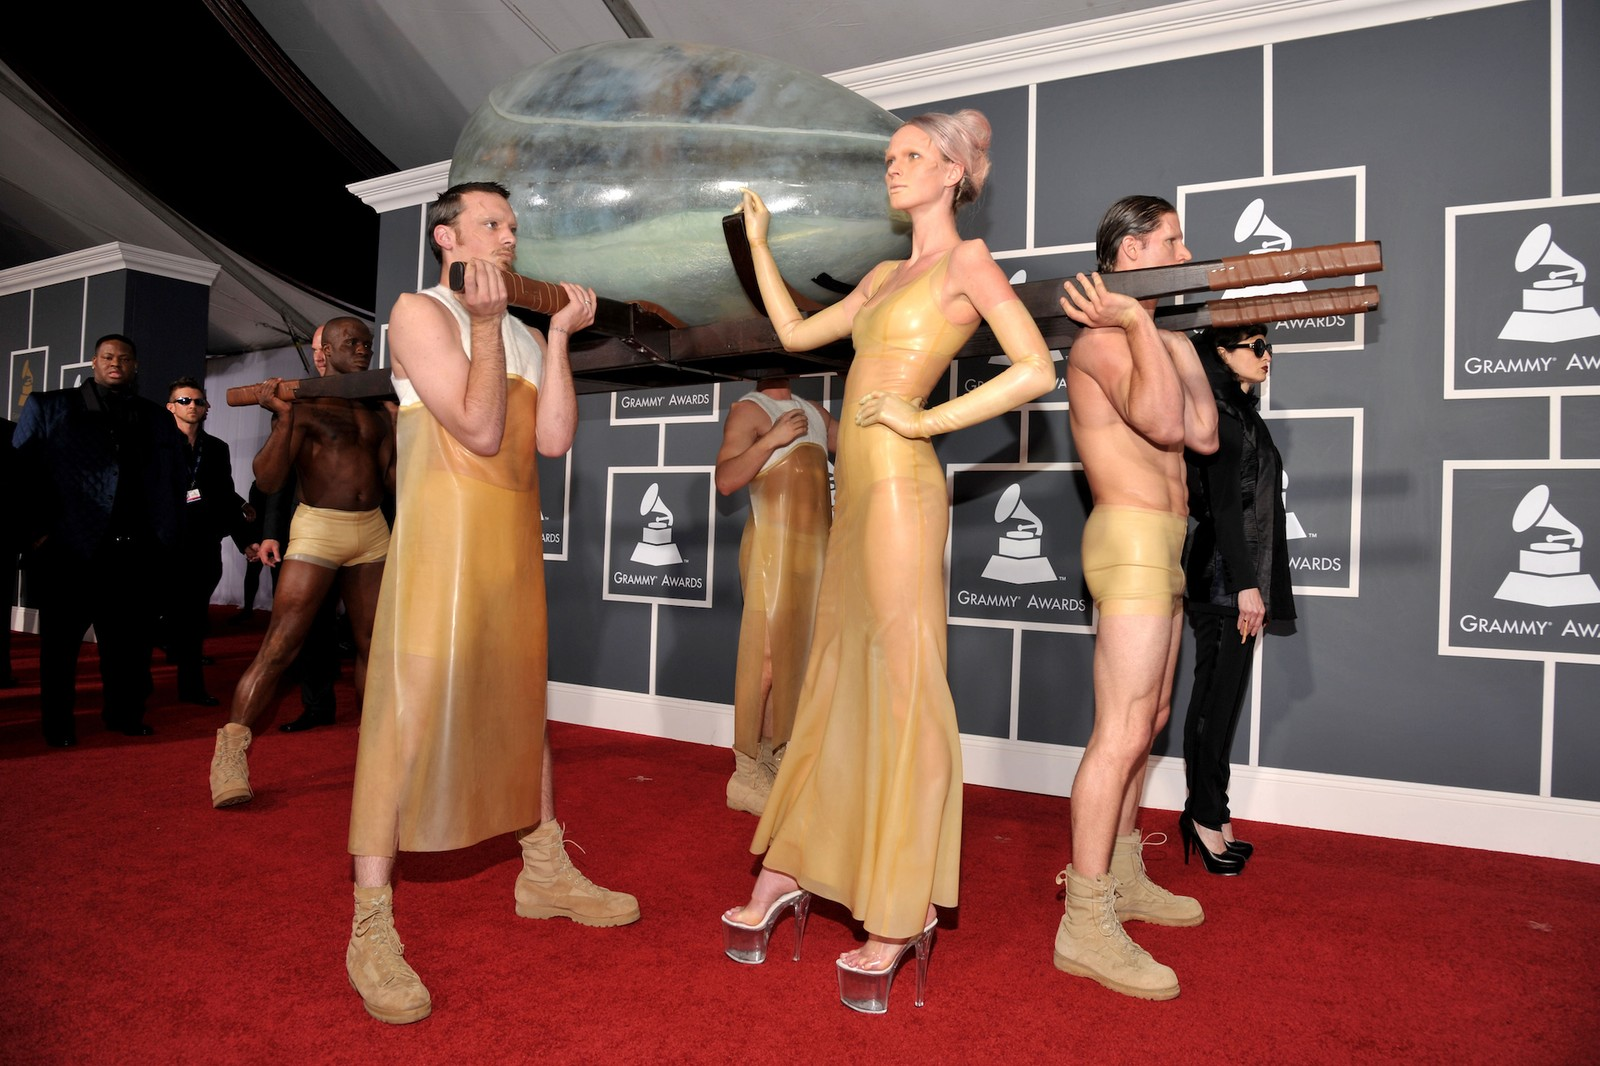 Lady Gaga's Best Fashion Looks and Outfits Grammys Oscars Meat Dress Space Egg Hair Bow